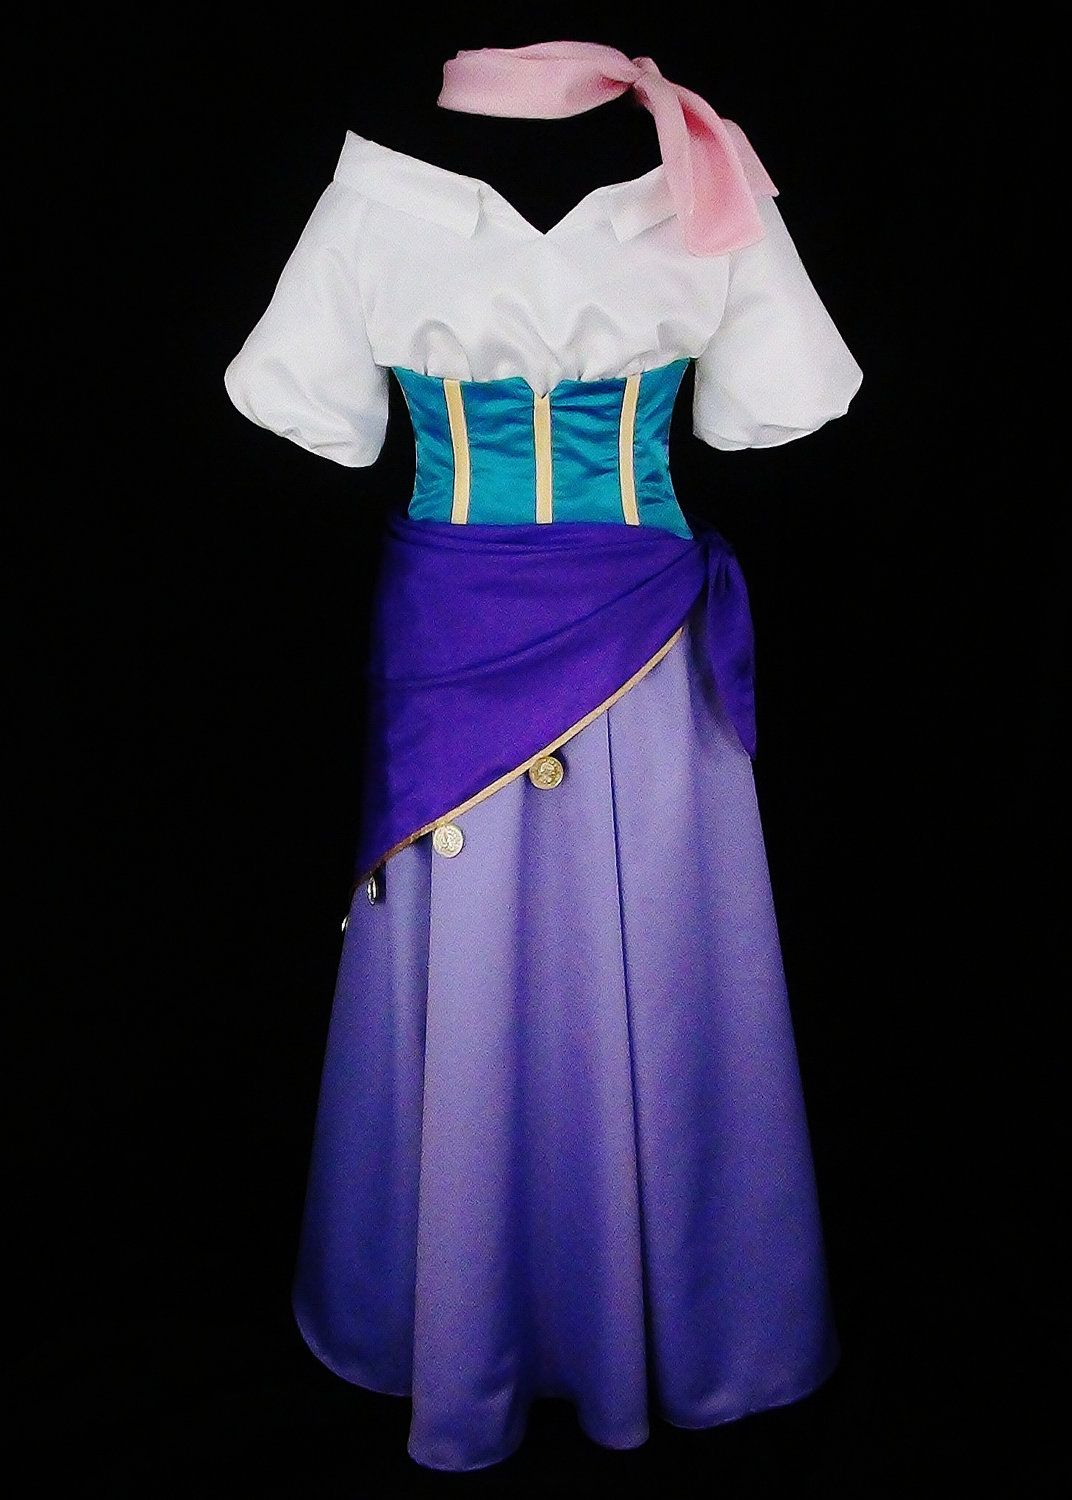 Beautiful Disney Costumes Adult Esmeralda Gypsy Costume Custom Made.  $600.00, Via Etsy. Actually Had One Like This When I Was A Little Kid And I  Think I ...